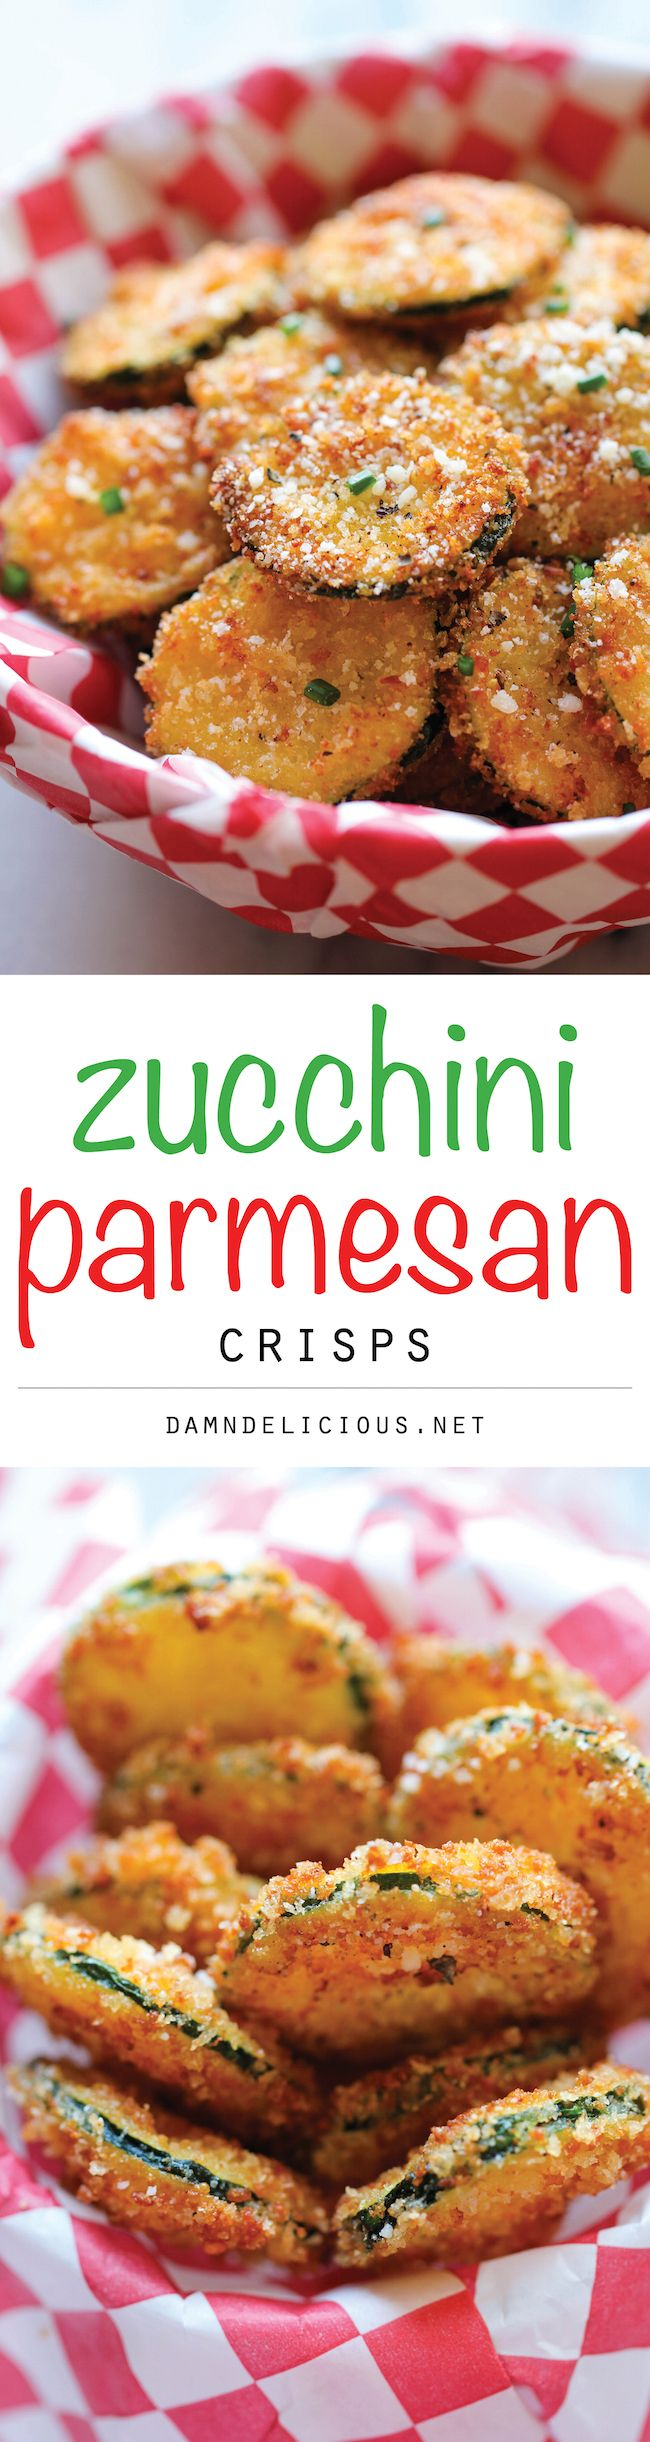 Zucchini Parmesan Crisps - A healthy snack that's incredibly crunchy, crispy and addicting! // from @damndelicious